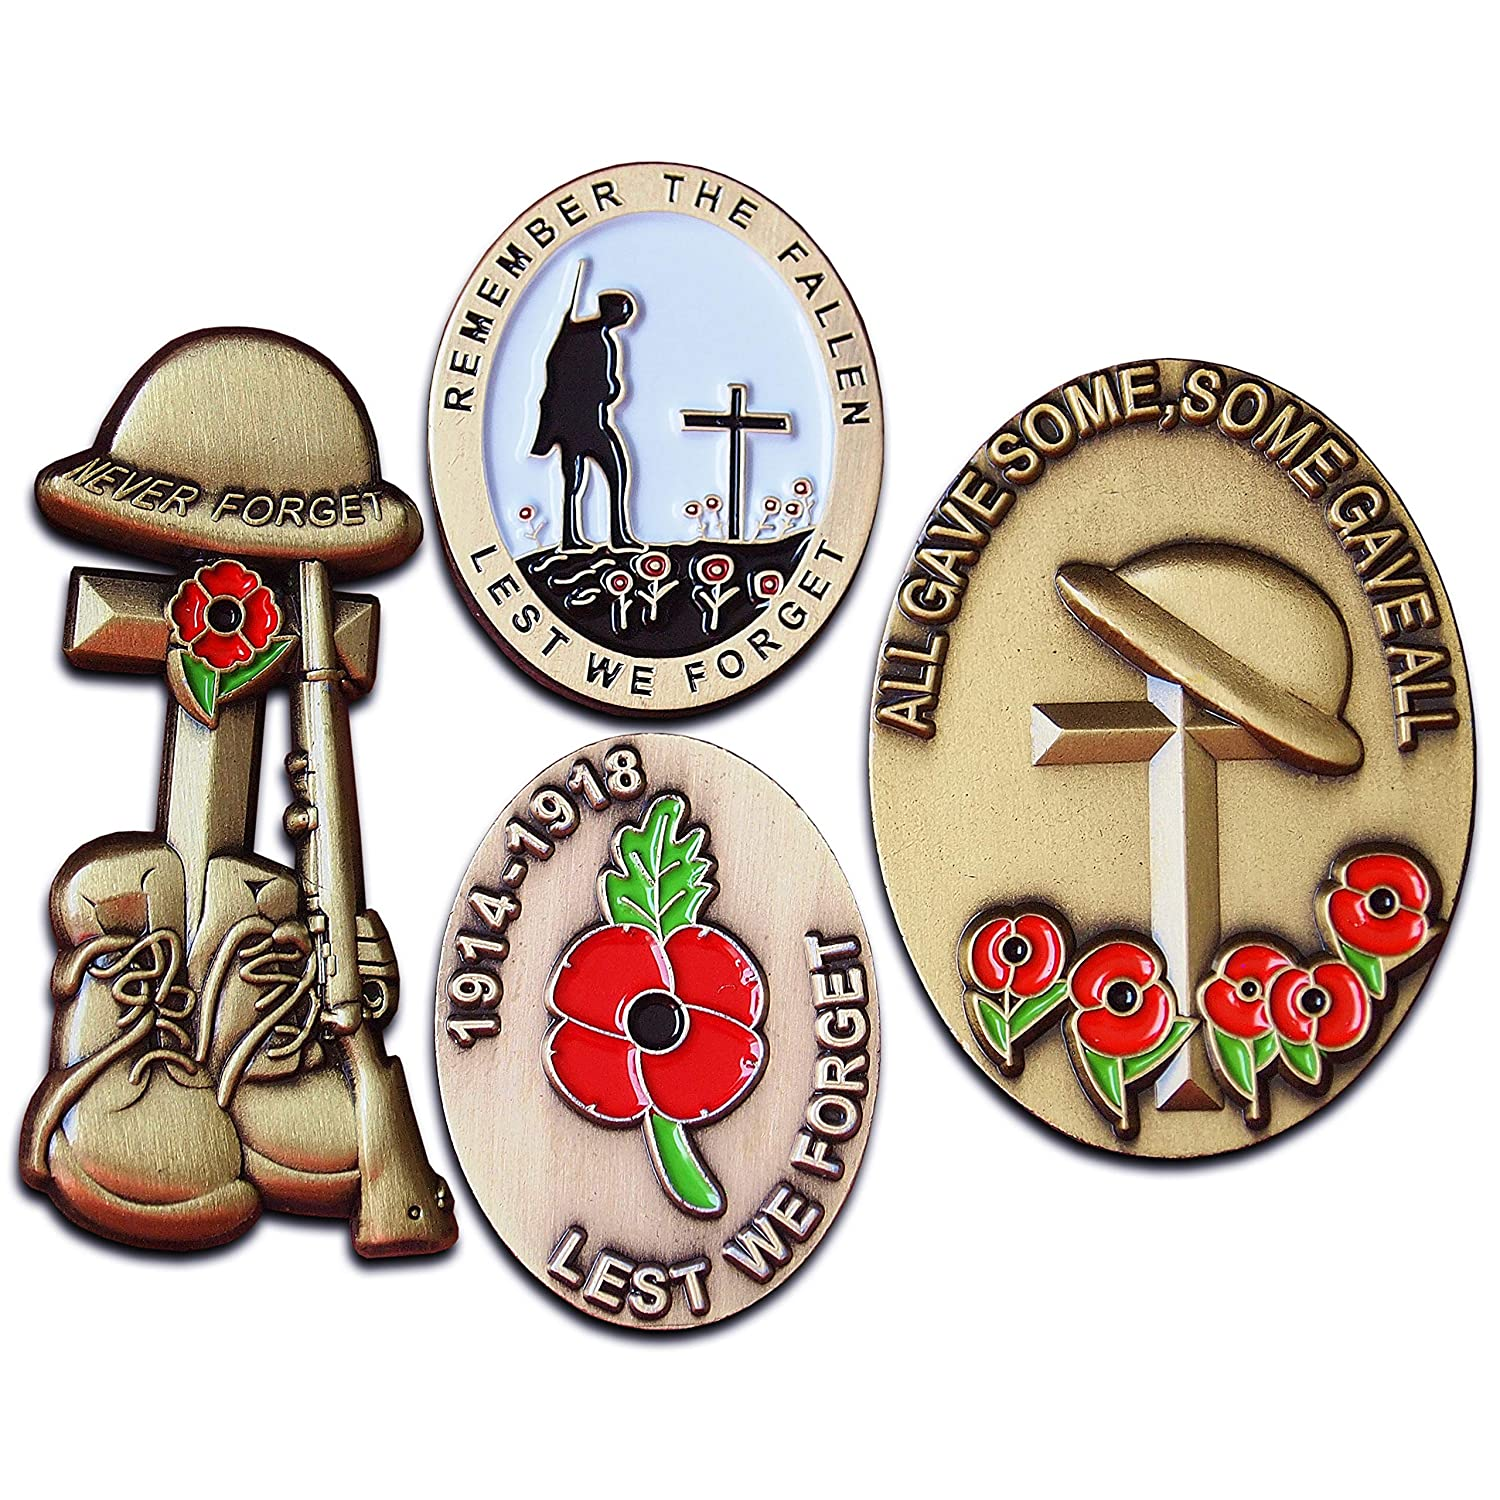 86e97fd9c Red Poppy Badge Set in Luxury Presentation Box Lest We Forget Pin  Remembrance Day Antique Plating World War Lone Soldier Veterans Enamel  Brooch Metal Rifle ...